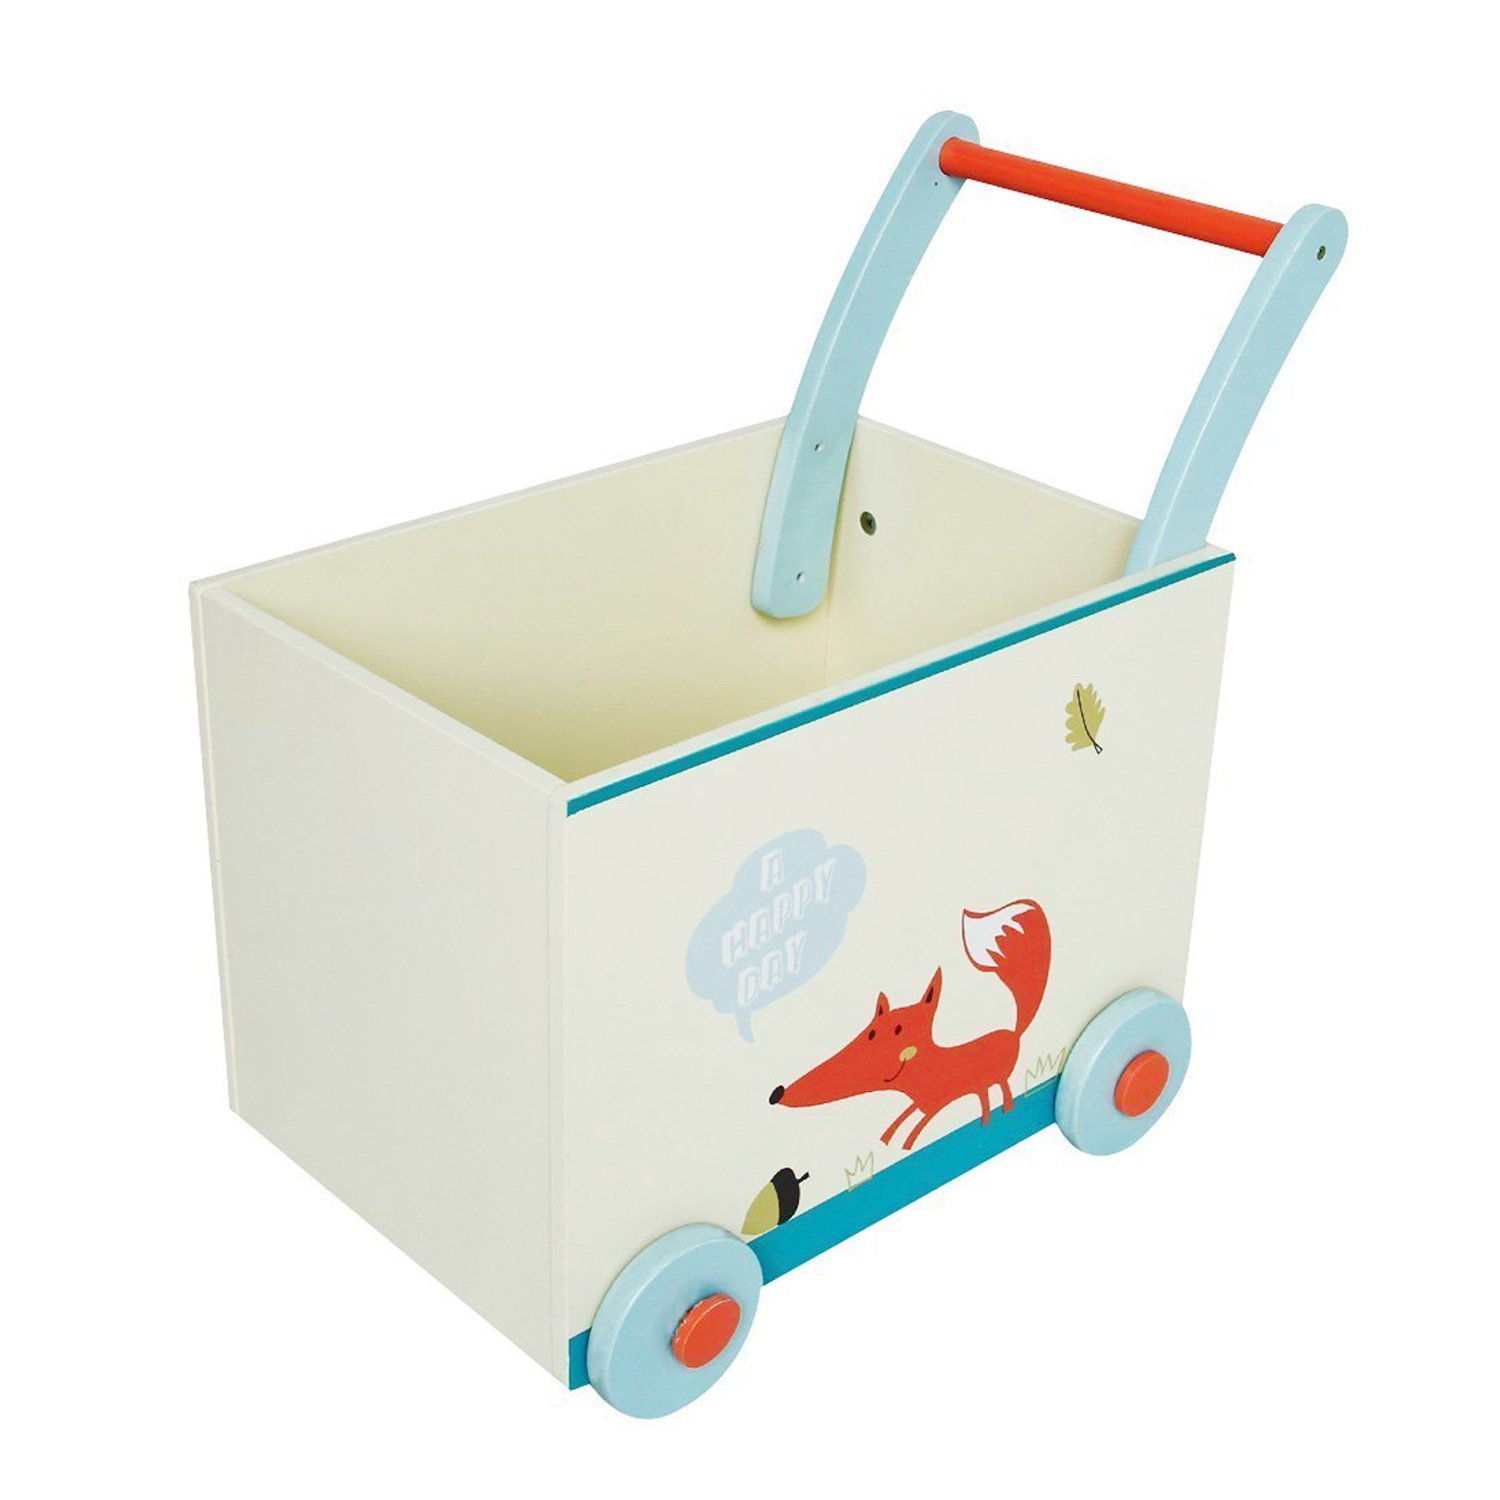 Labebe Baby Walker with Wheel, White Fox Printed Wooden Push Toy, 2-in-1 Wooden Activity Walker for Baby 1-3 Years, Baby Wagon/Infant Baby Walker Wagon/Baby Learning Walker/Push Pull Toy/Walk Walker